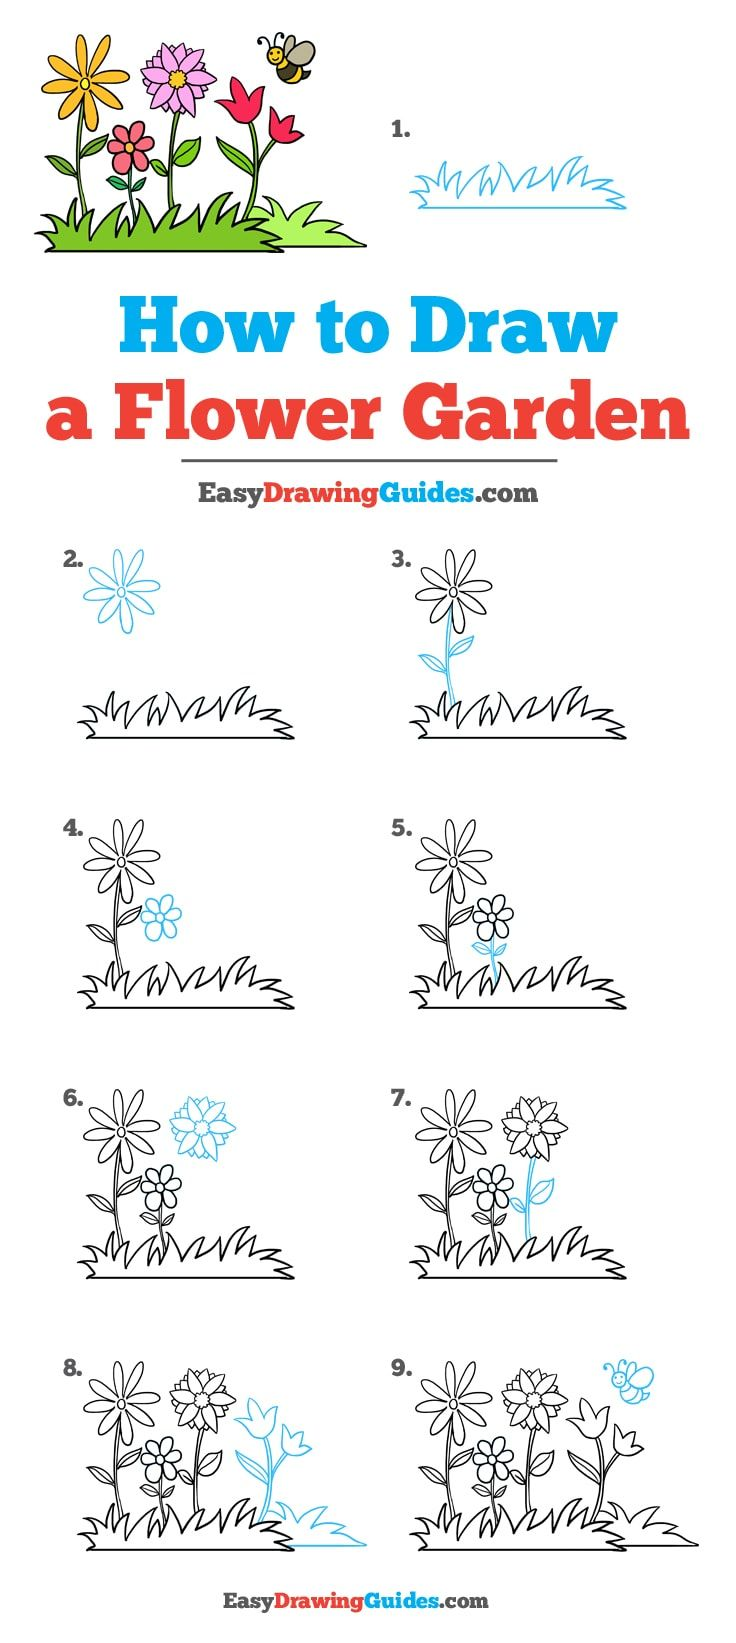 howto draw a garden with flowers